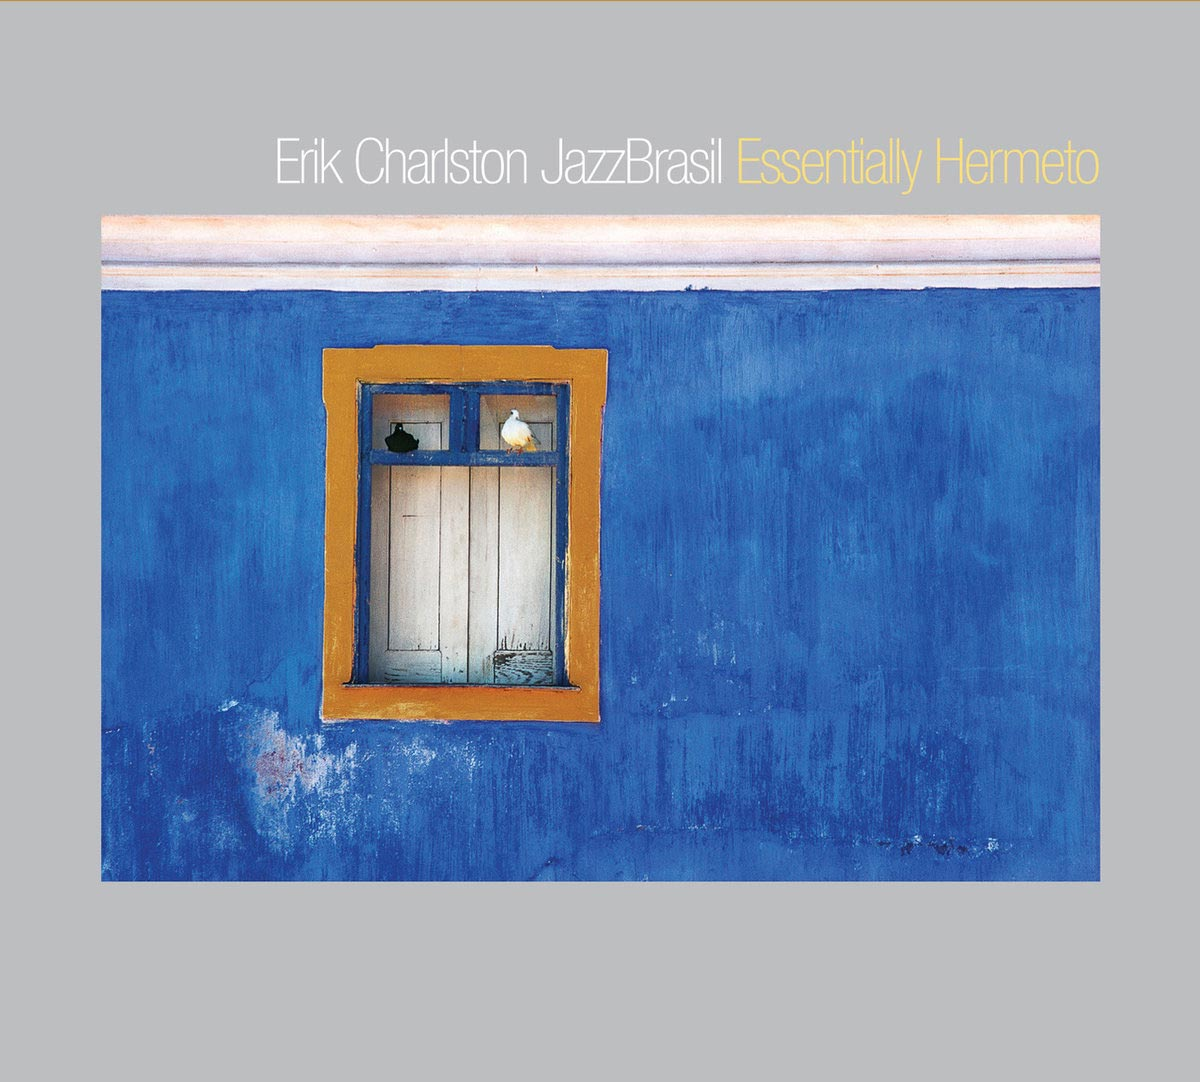 Essentially Hermeto by Erik Charlston Jazz Brazil